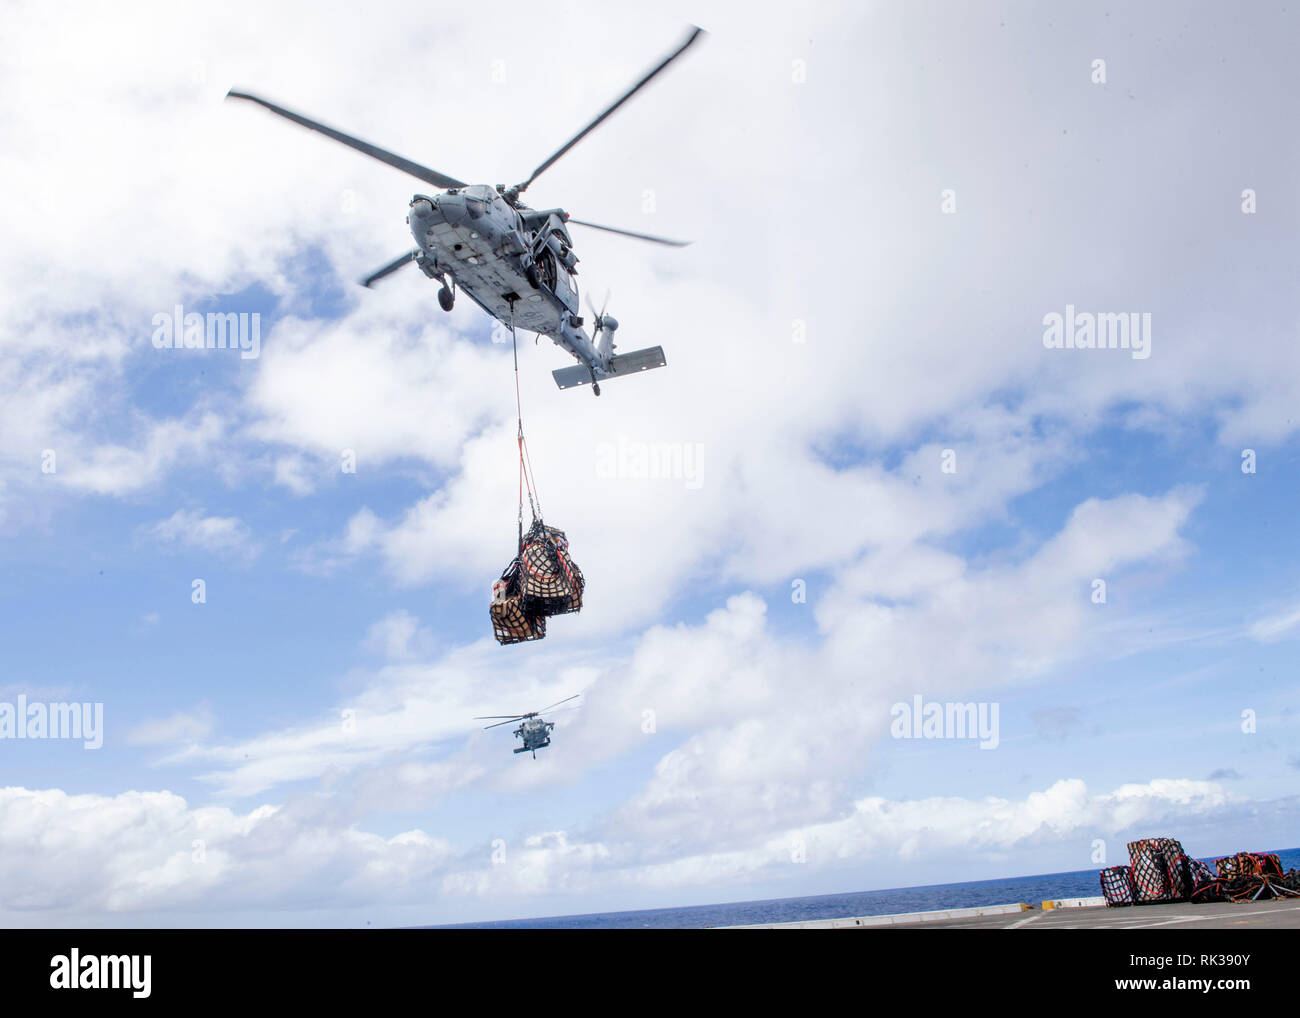 """190207-N-PH222-1319 PACIFIC OCEAN (Feb. 7, 2019) A MH-60S Sea Hawk helicopter, attached to the """"Blackjacks"""" of Helicopter Sea Combat Squadron (HSC) 21, delivers cargo to the flight deck of the San Antonio-class amphibious transport dock ship USS Anchorage (LPD 23) during a vertical replenishment. Anchorage is on a deployment of the Essex Amphibious Ready Group (ARG) and 13th Marine Expeditionary Unit (MEU). The Essex ARG/13th MEU is a capable and lethal Navy-Marine Corps team deployed to the 7th fleet area of operations to support regional stability, reassure partners and allies and maintain a - Stock Image"""